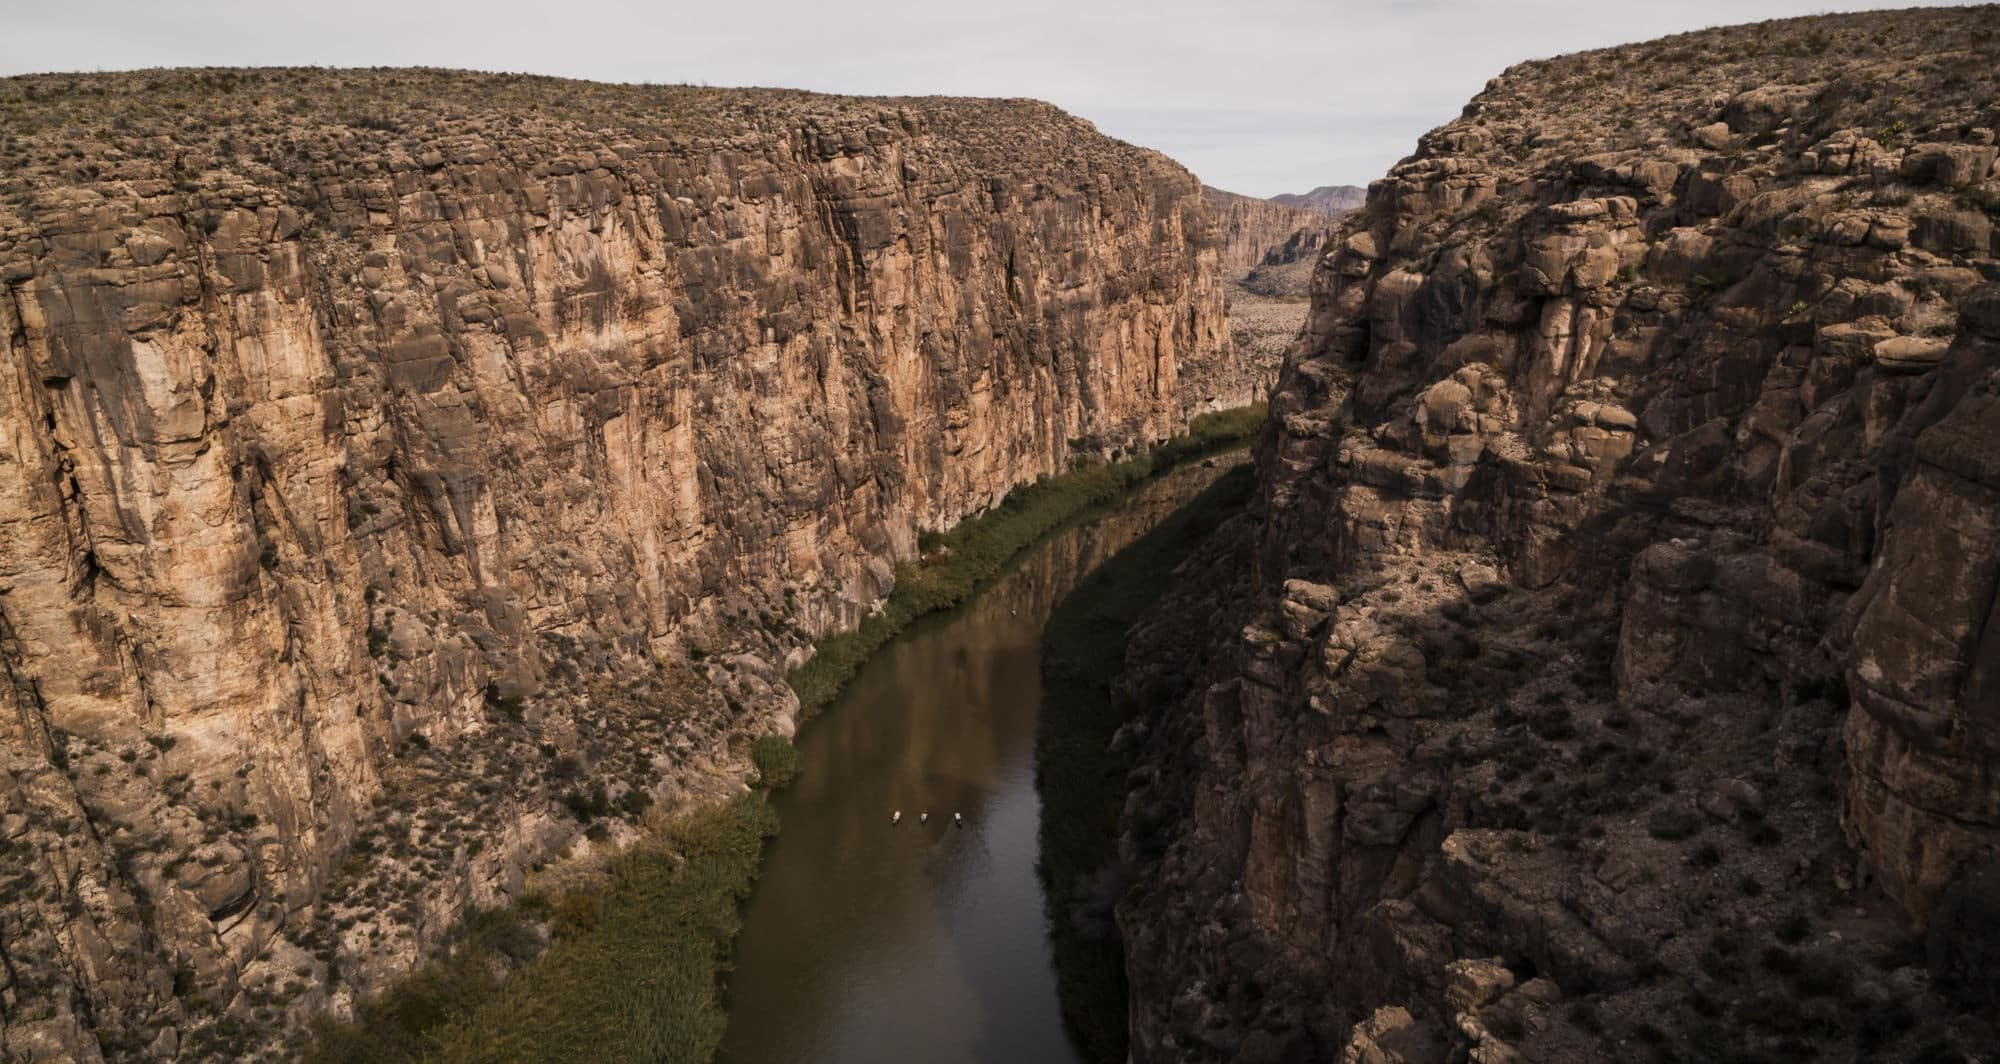 Lower Canyons of the Rio Grande